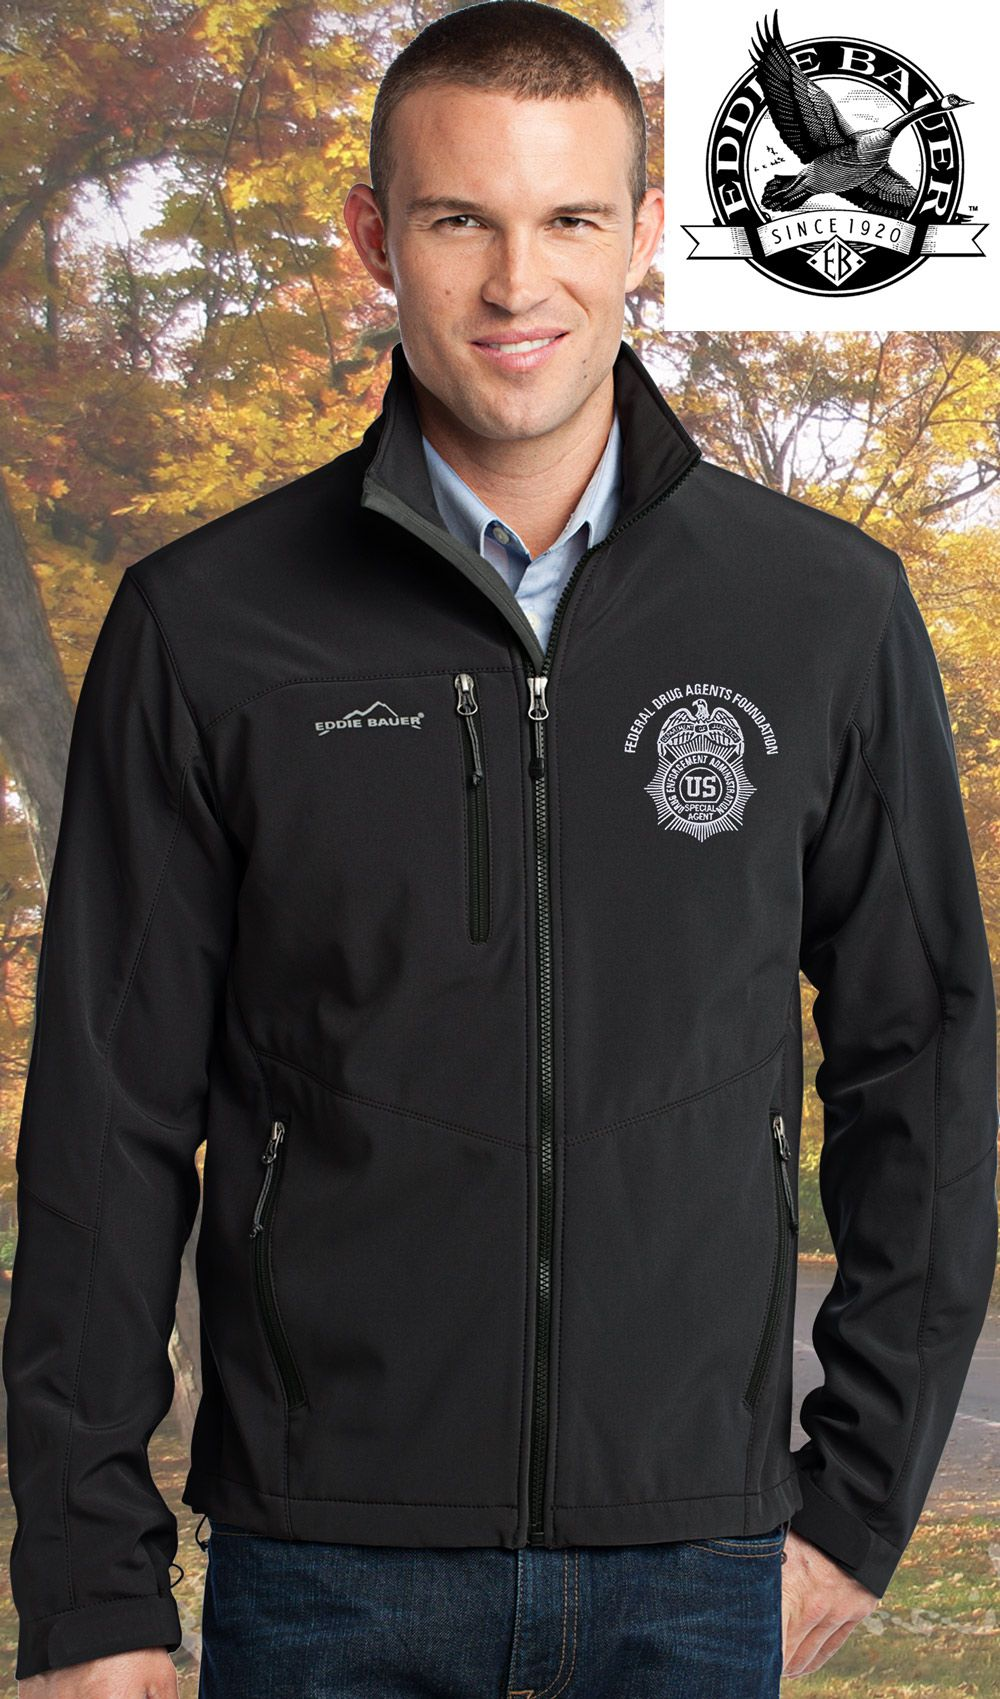 Design your own stylish jackets with your own logo.